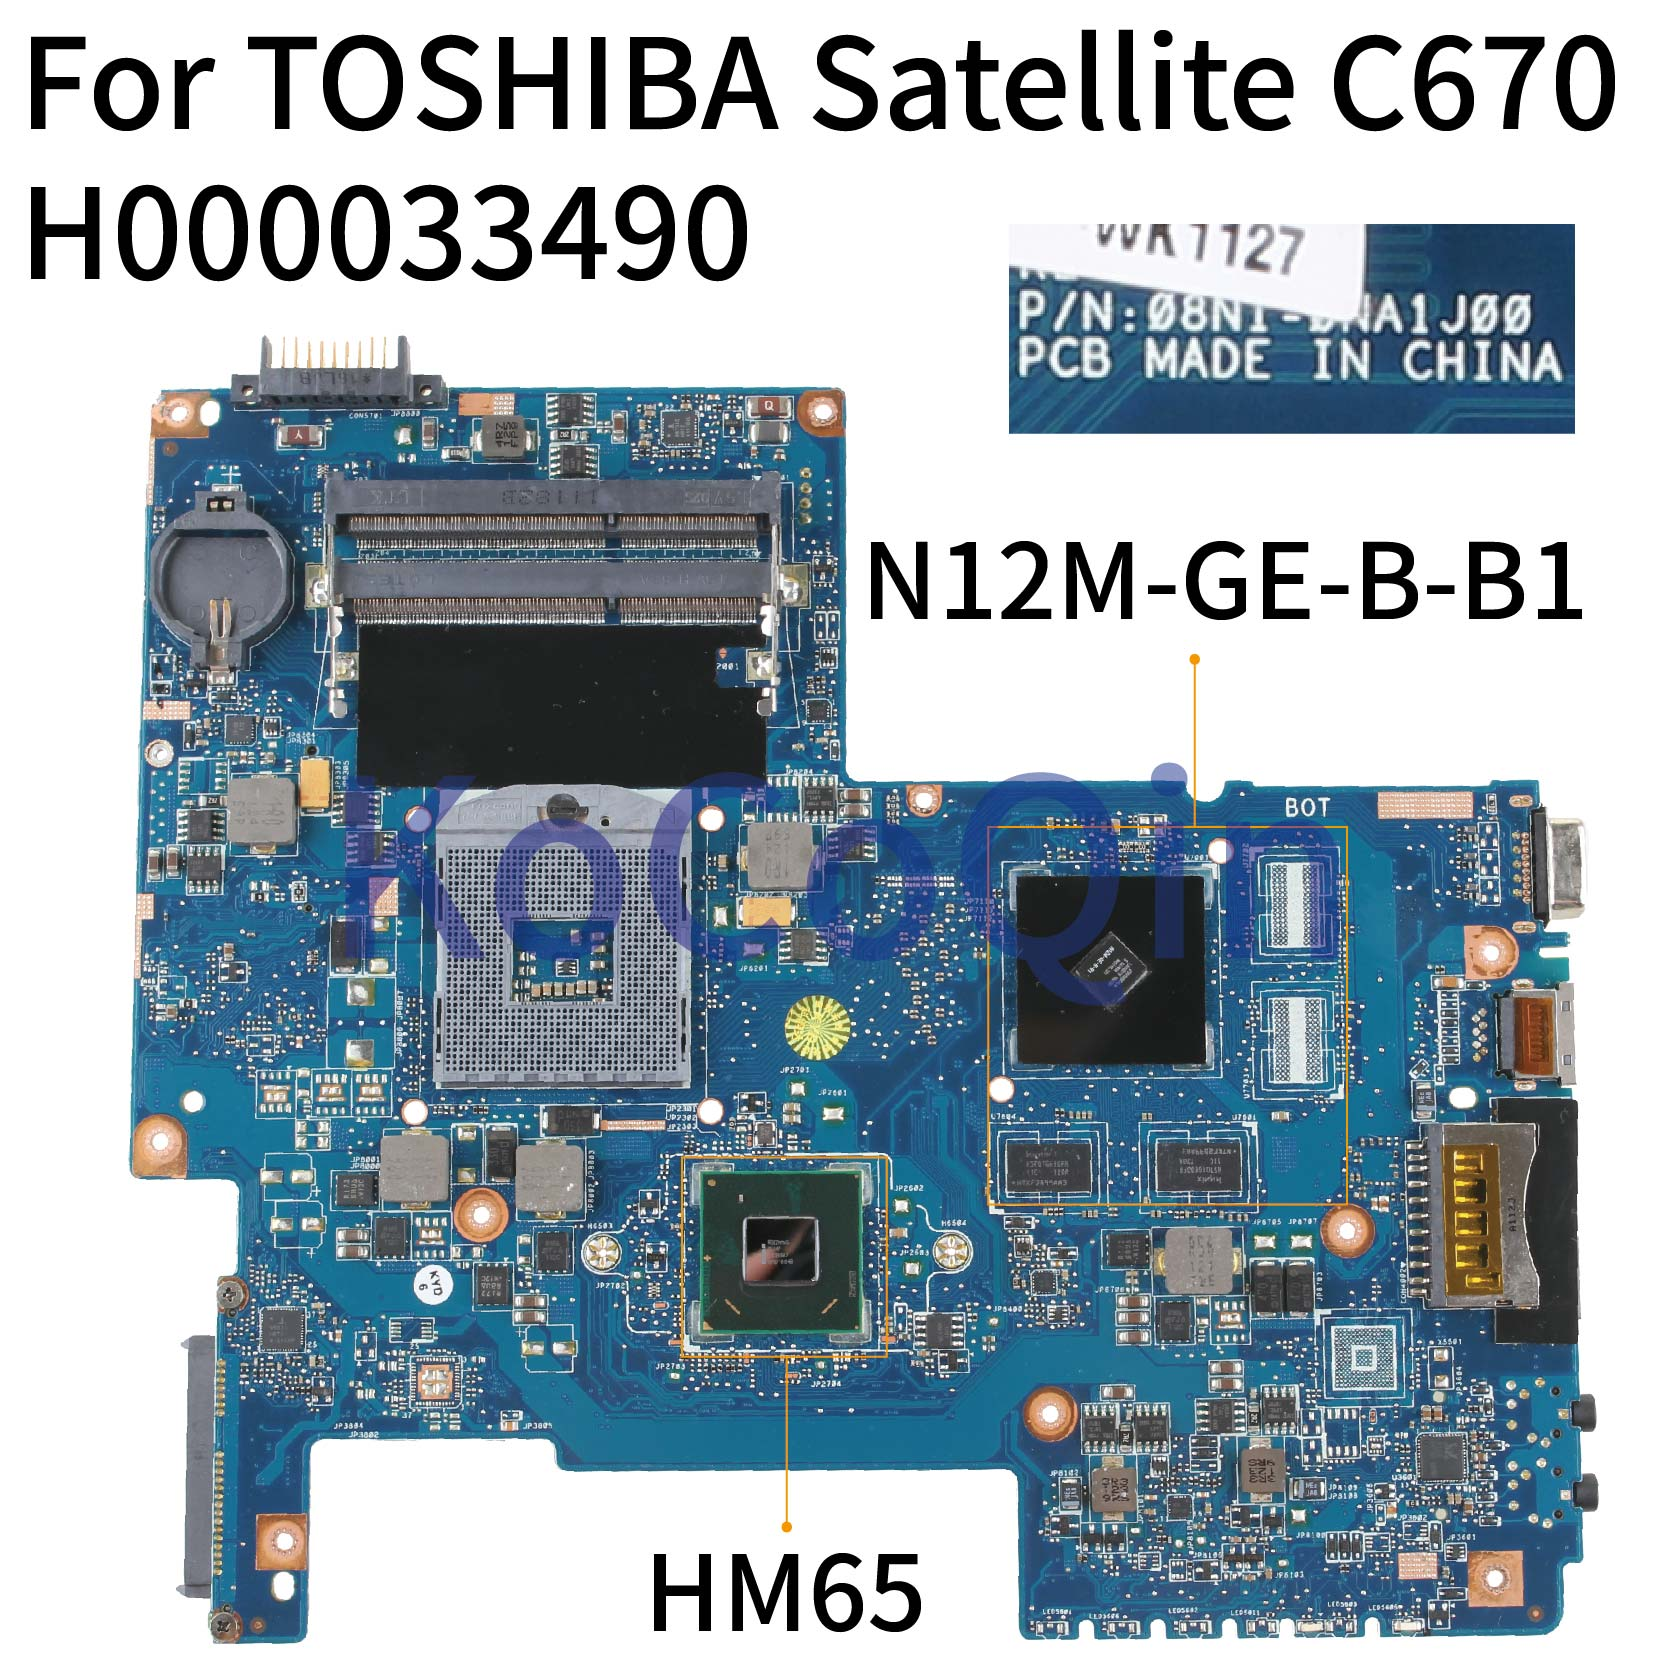 KoCoQin Laptop Motherboard For TOSHIBA Satellite C670 C675 L770 L775 HM65 Mainboard H000033490 N12M-GE-B-B1